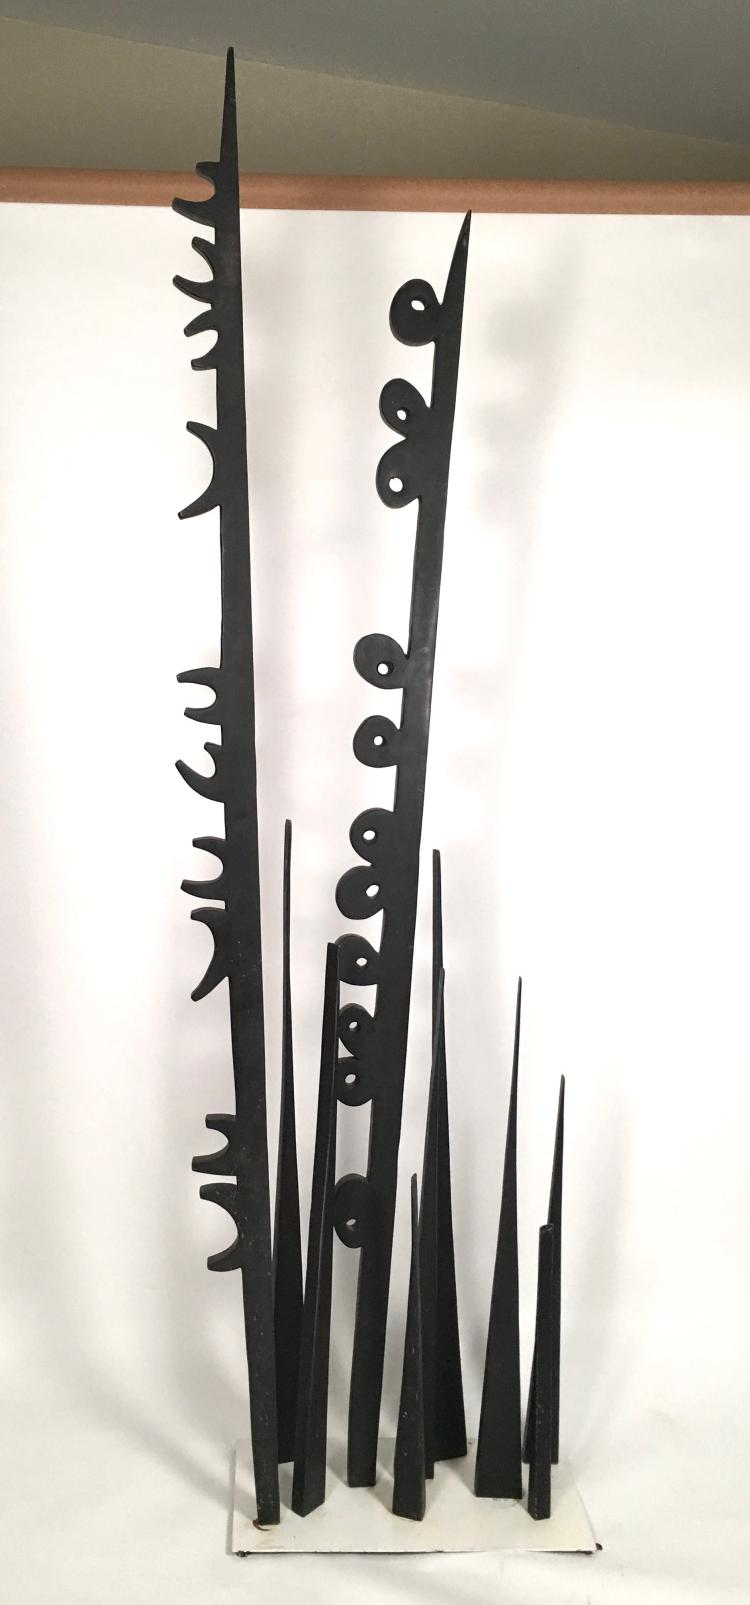 Mid-Century Modern Black Painted Metal Sculpture In the Manner of Louise Nevelson